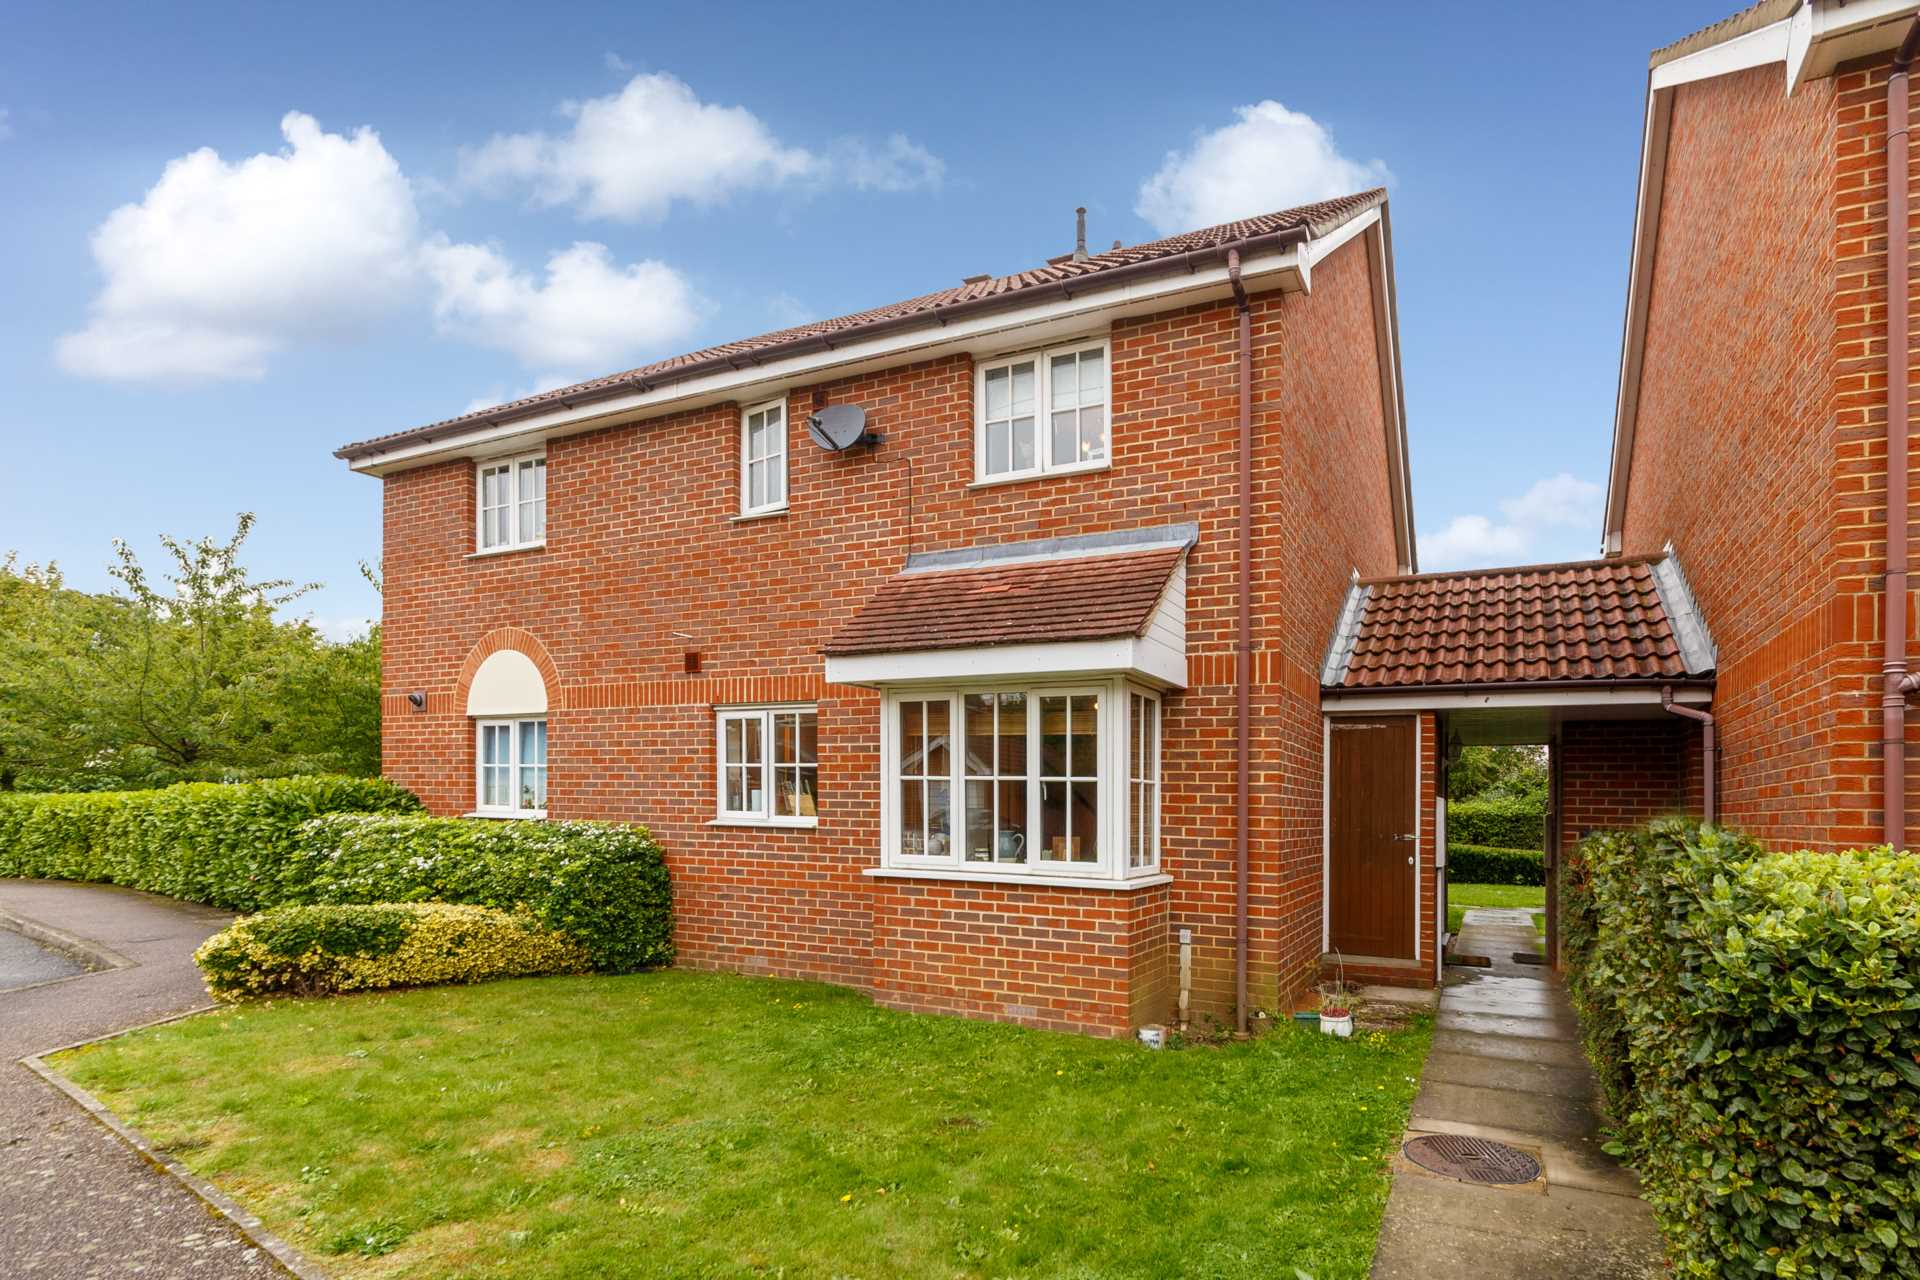 SOLD - OAKTREE CLOSE